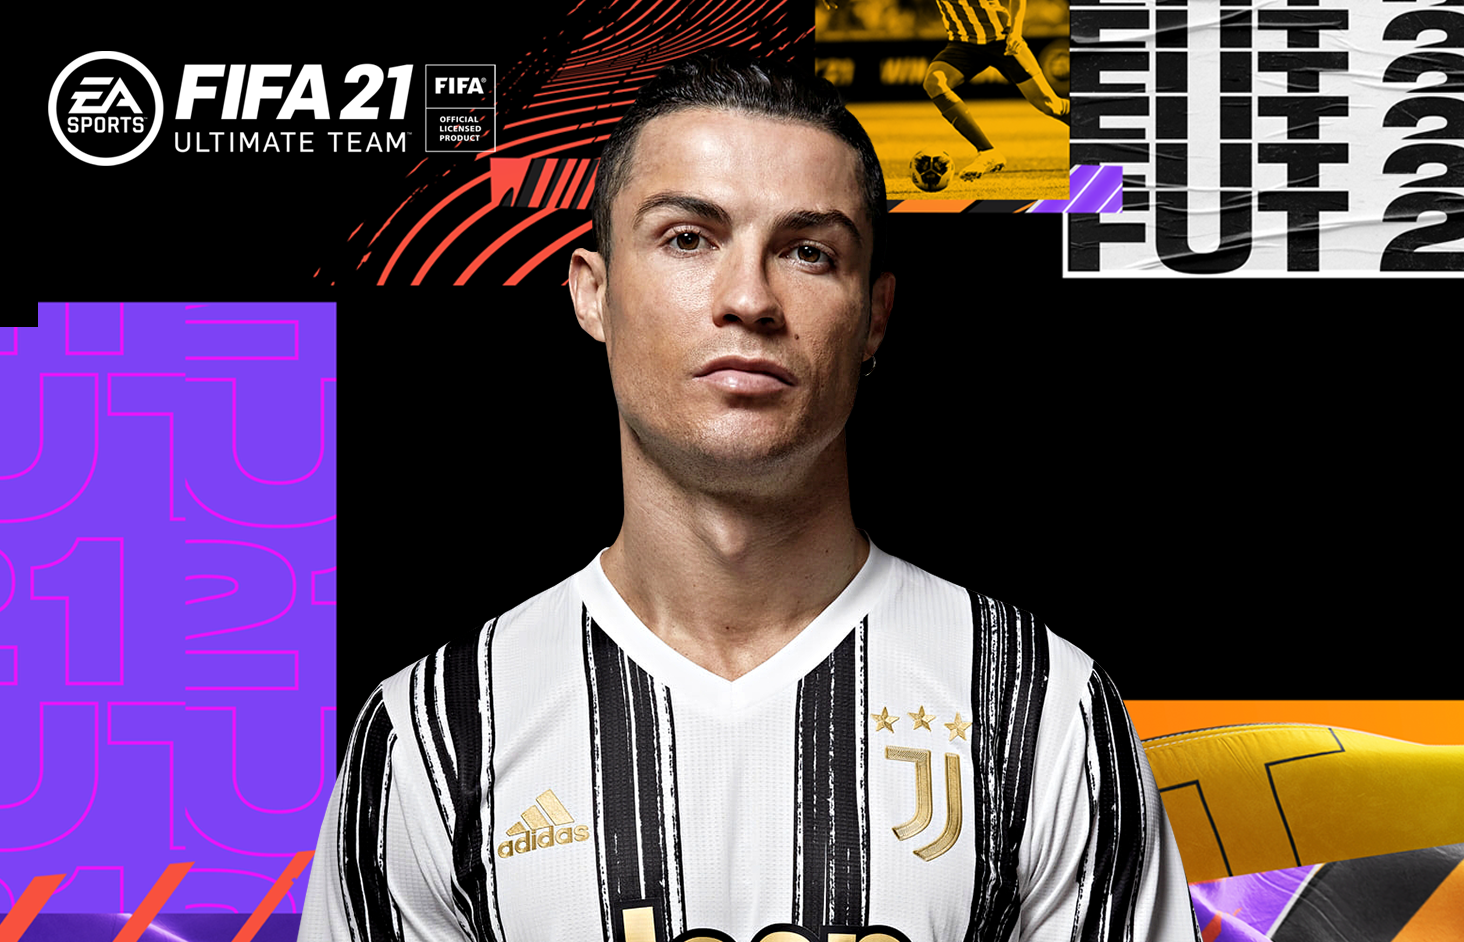 Goal Ultimate 11 powered by FIFA 21 | Cristiano Ronaldo is the best striker in the world